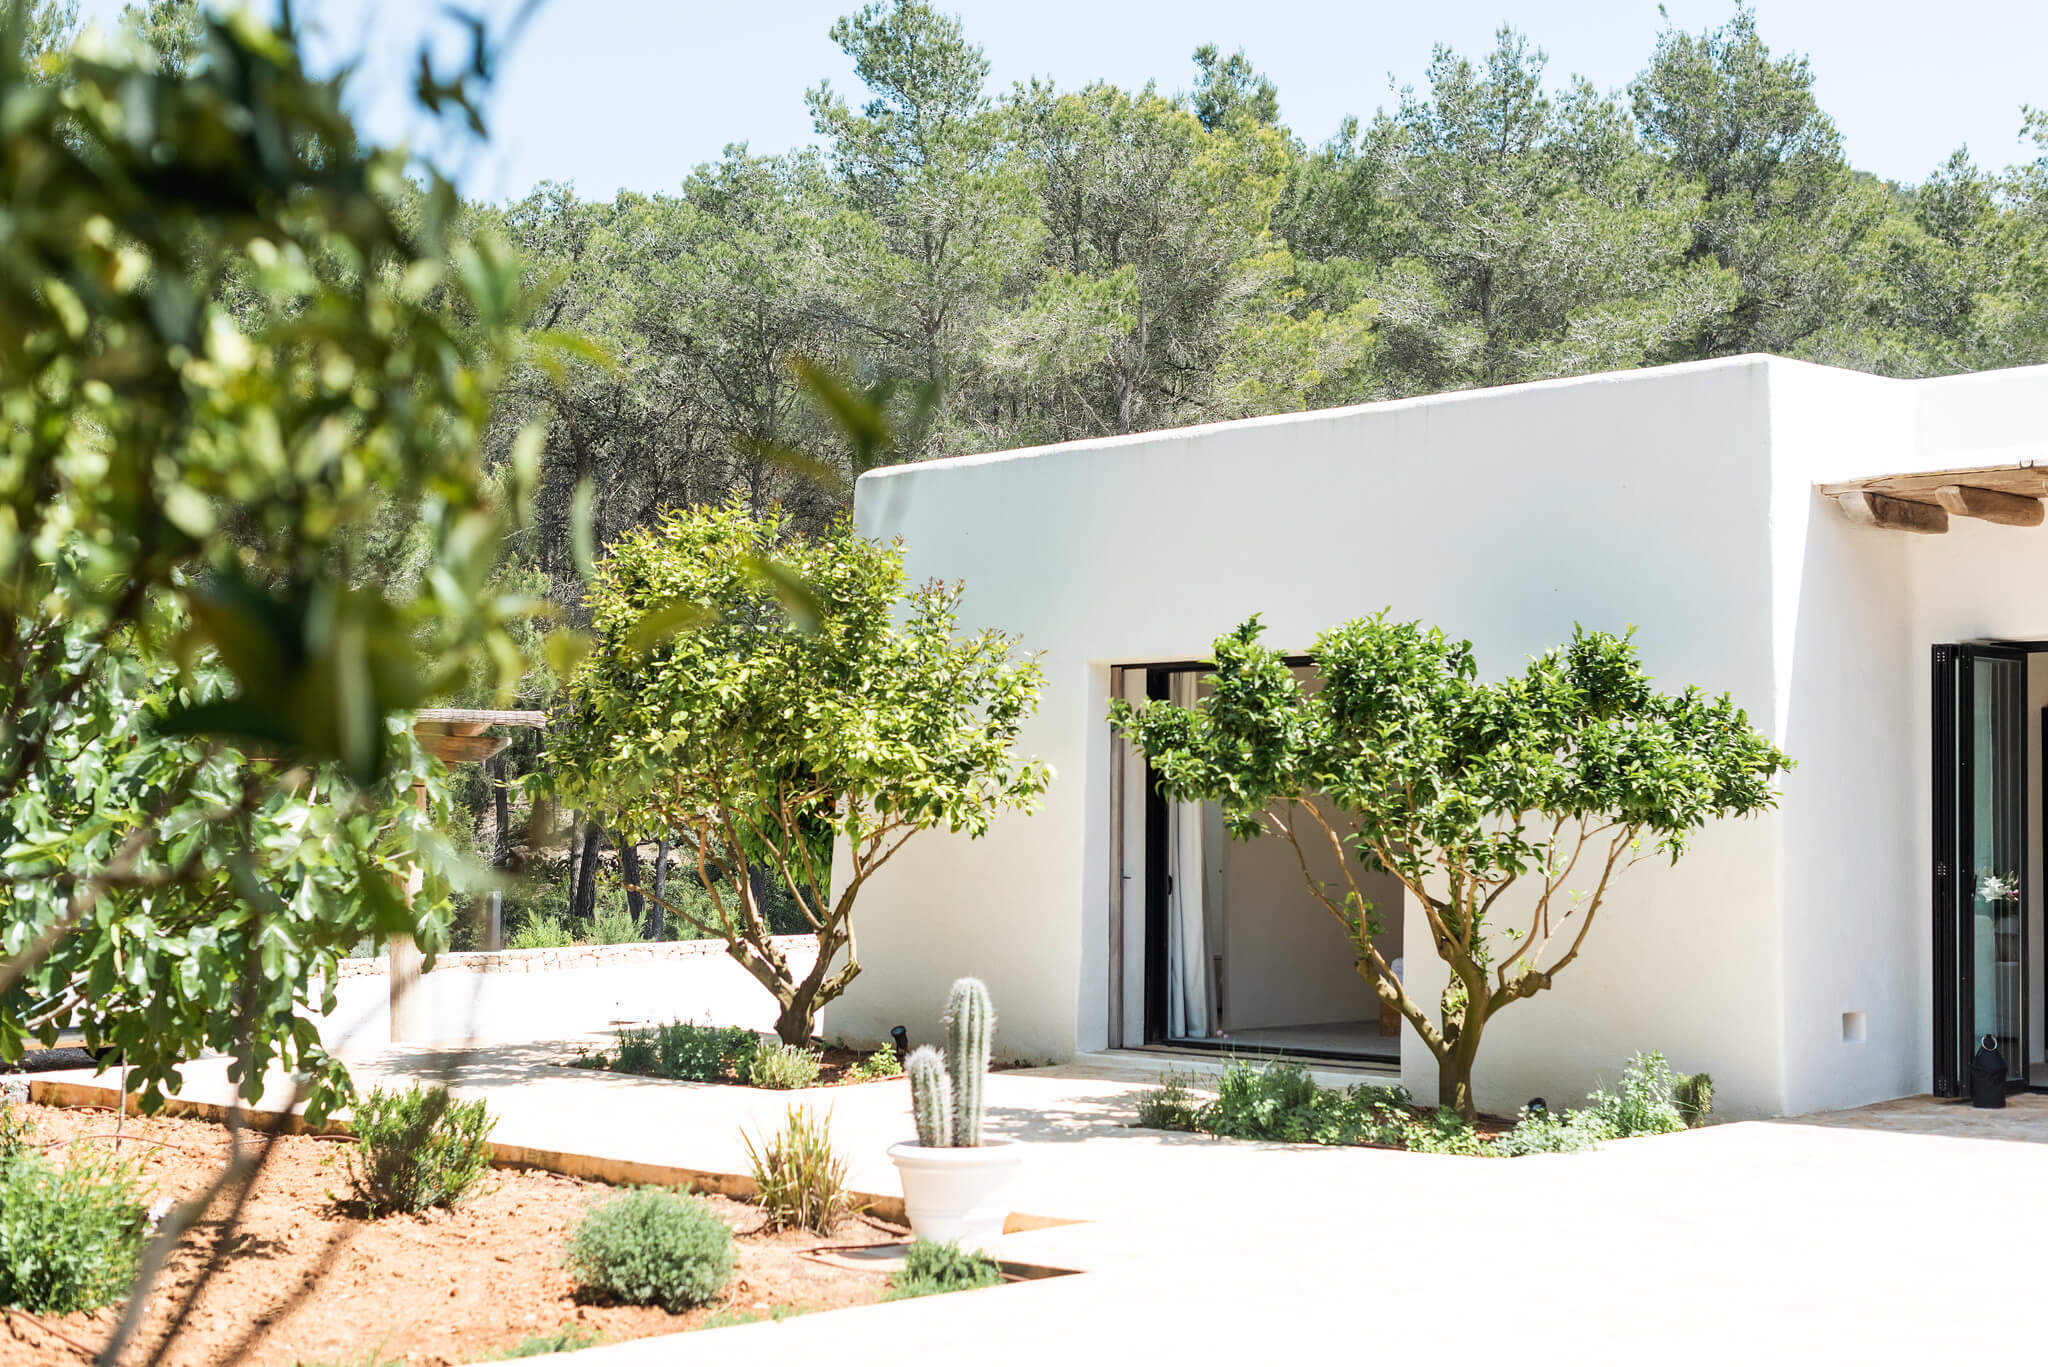 https://dev.white-ibiza.com/wp-content/uploads/2020/05/white-ibiza-villas-can-terra-view-to-bedroom.jpg